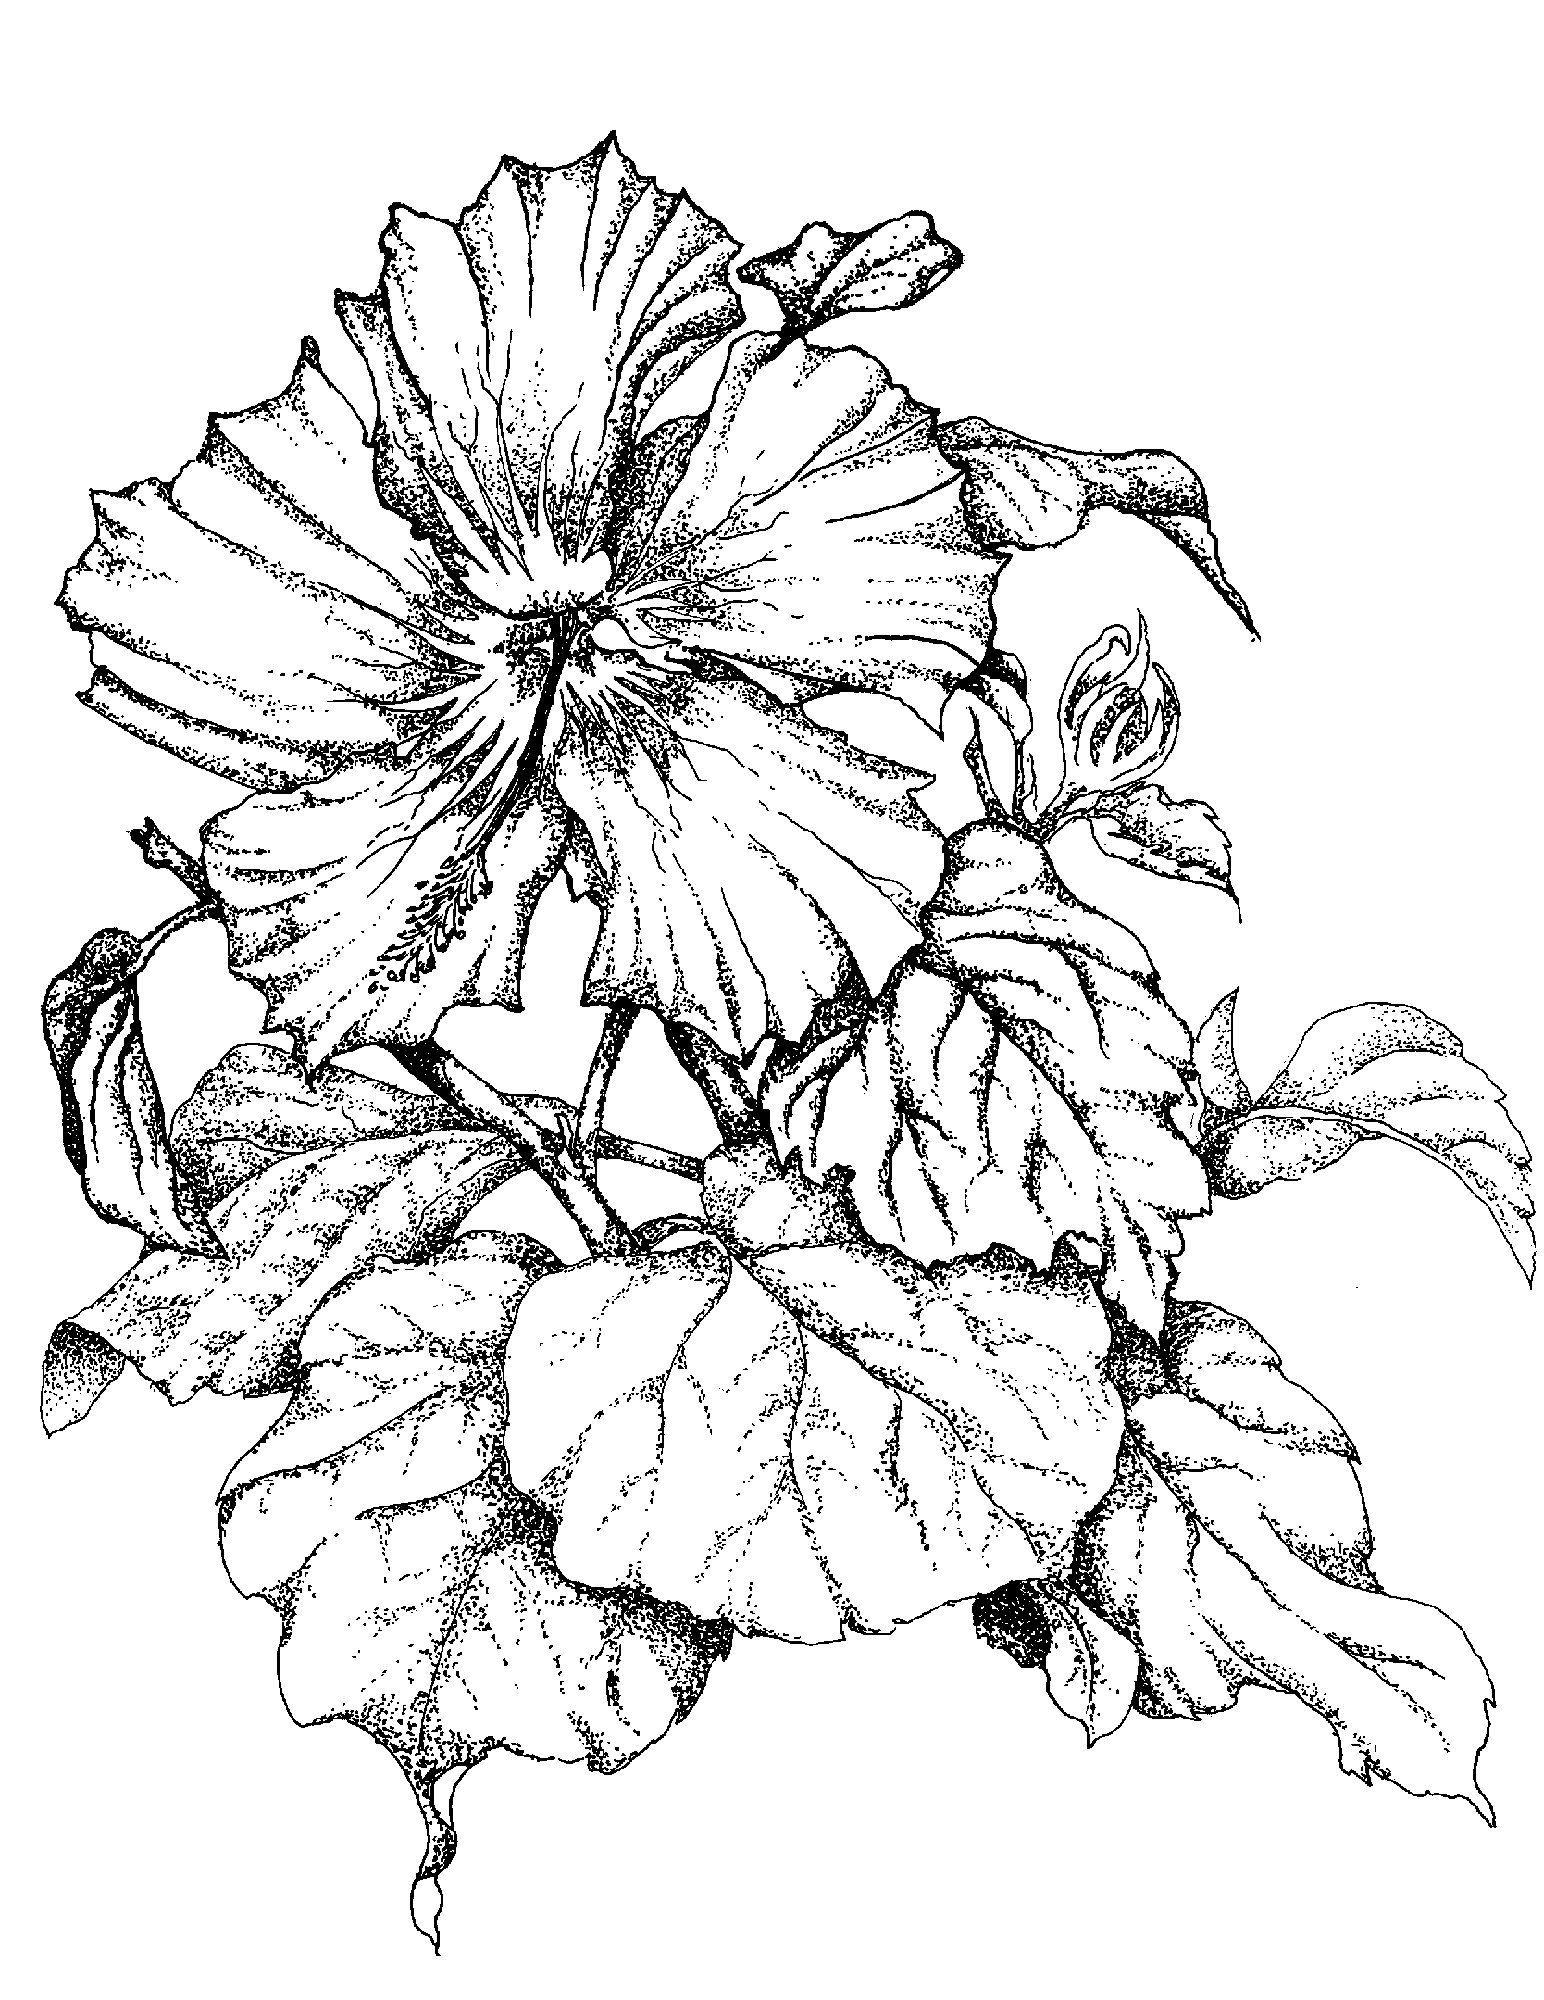 Flowers Art Drawing At Getdrawings Free For Personal Use